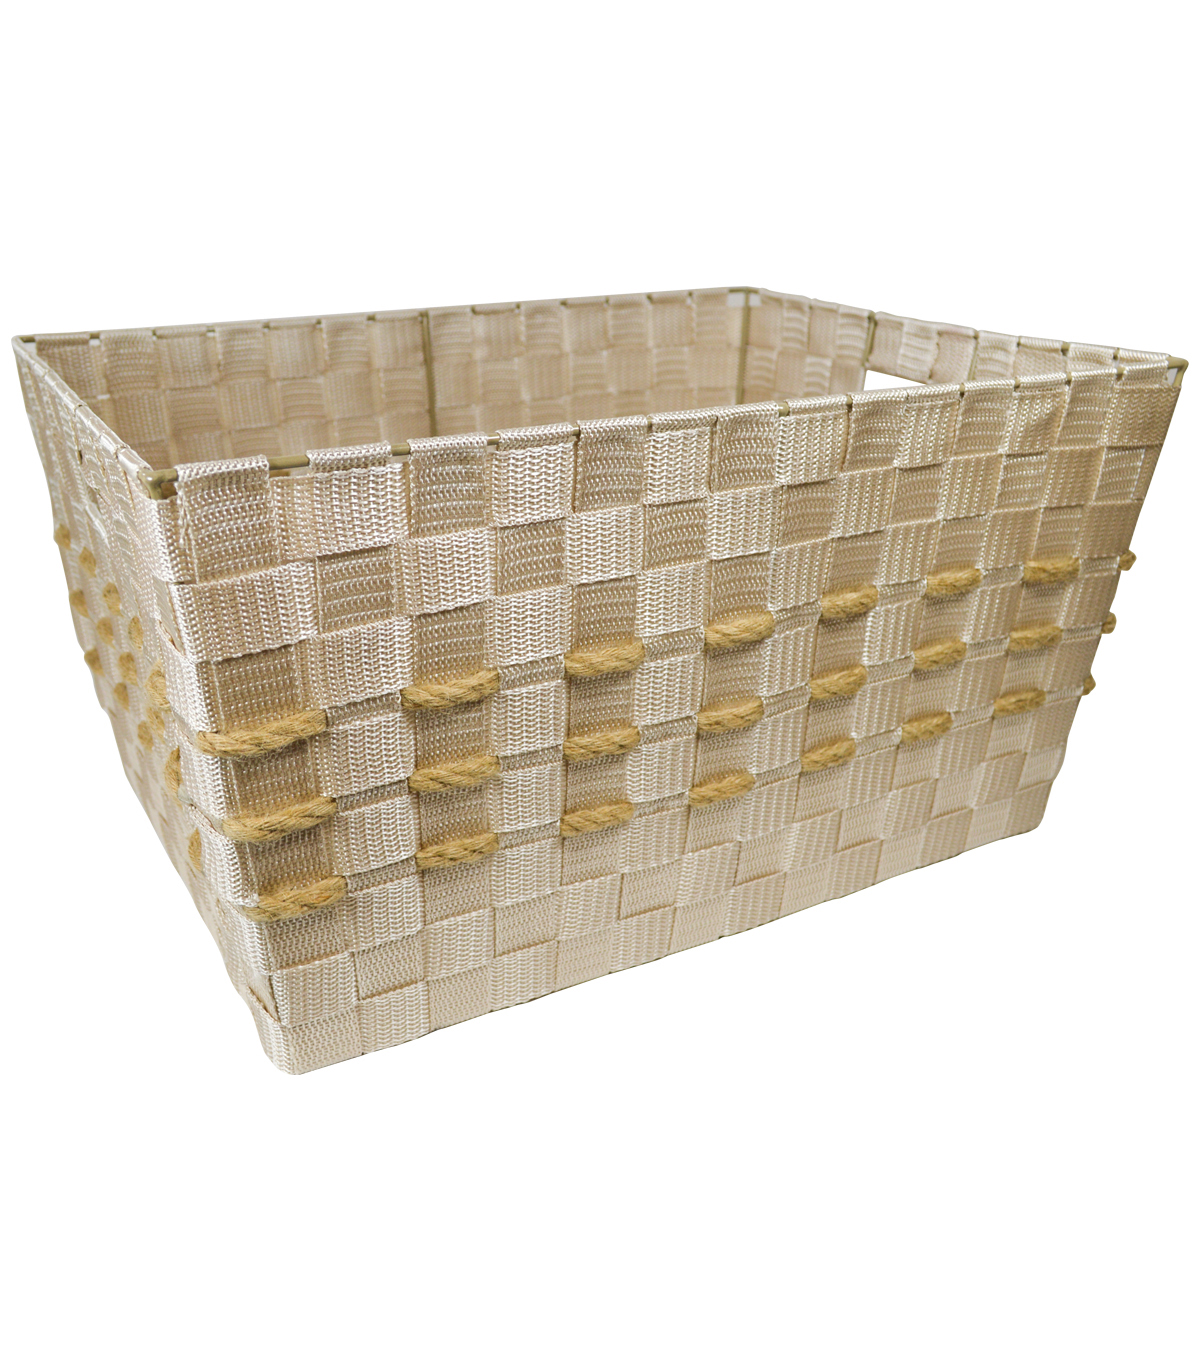 Organizing Essentials Large Strap Bin With Hemp Yarn-Ivory